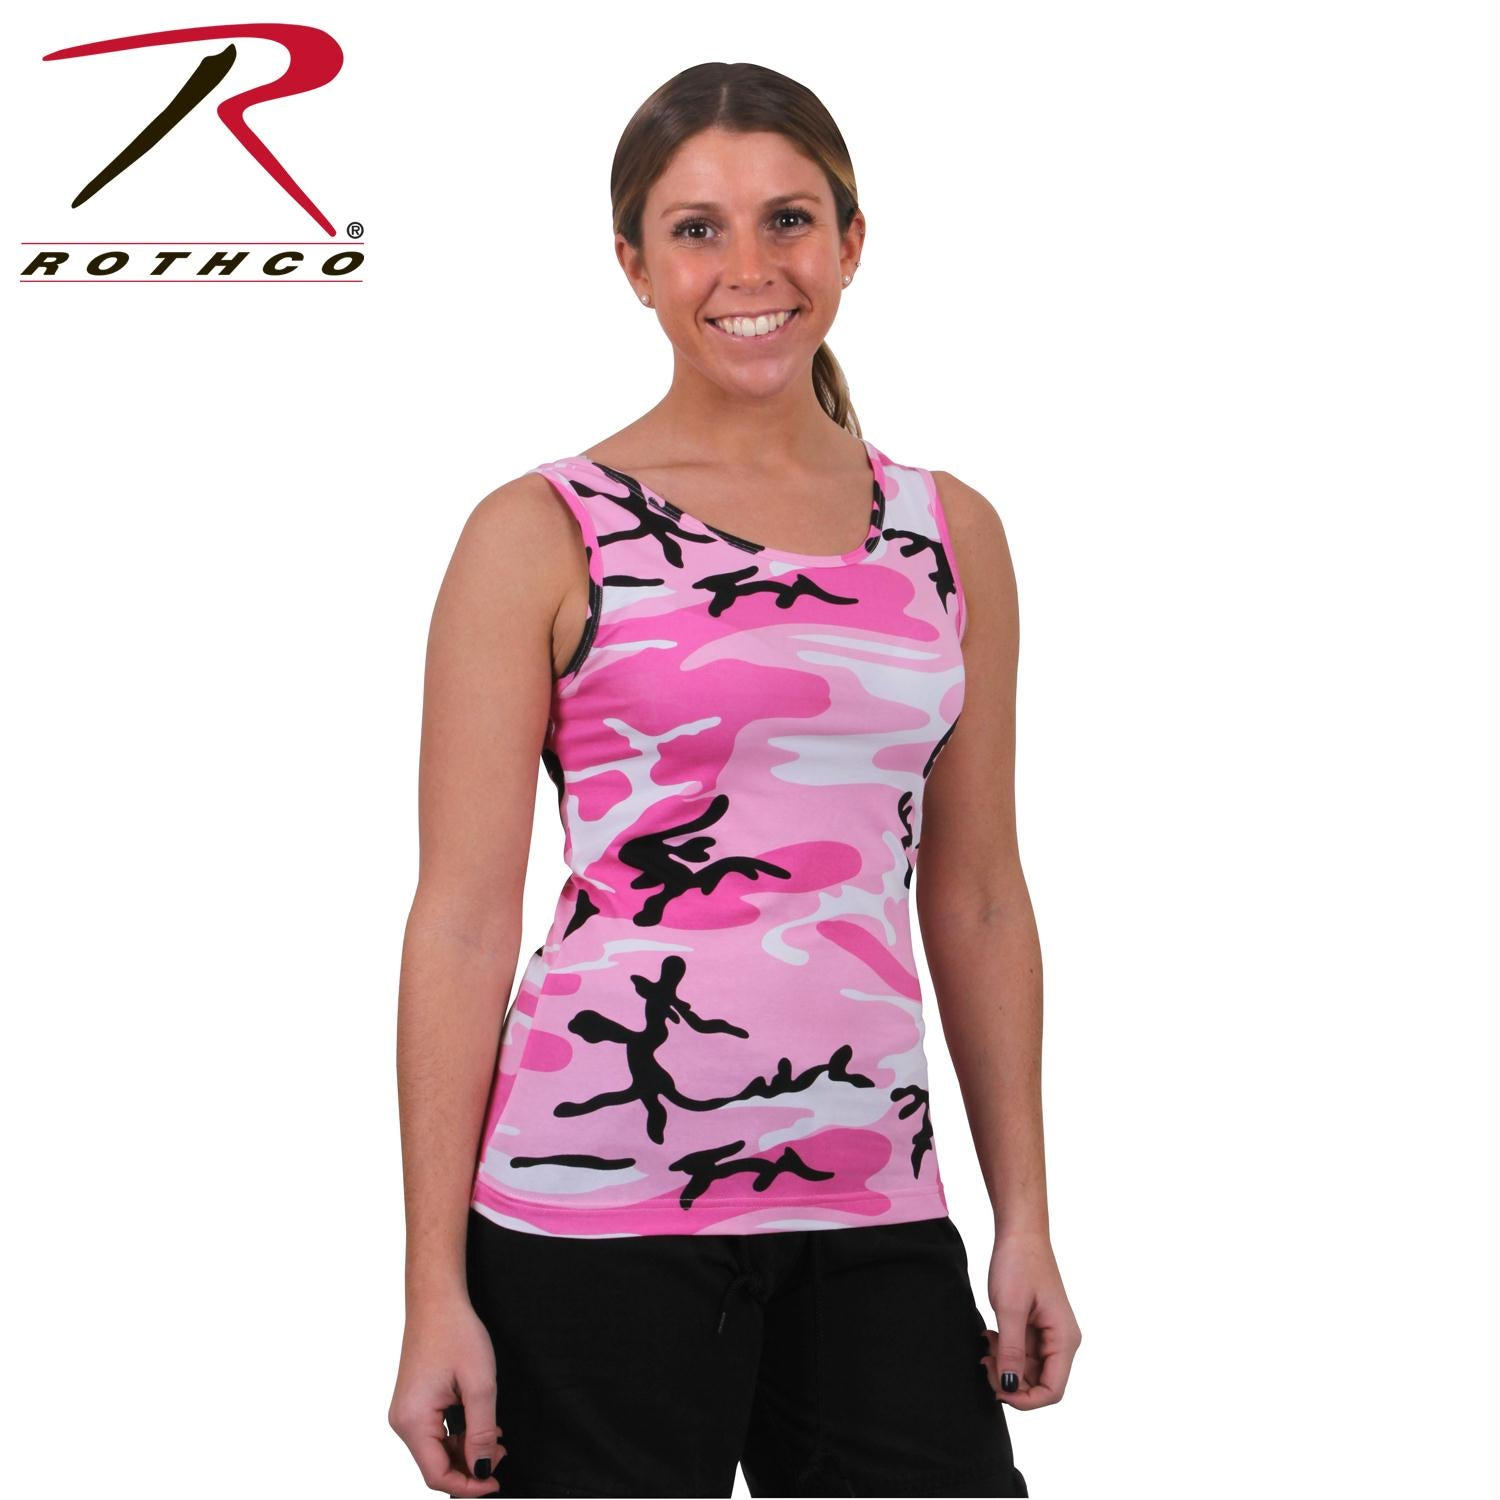 Rothco Womens Camo Stretch Tank Top - Pink Camo / L